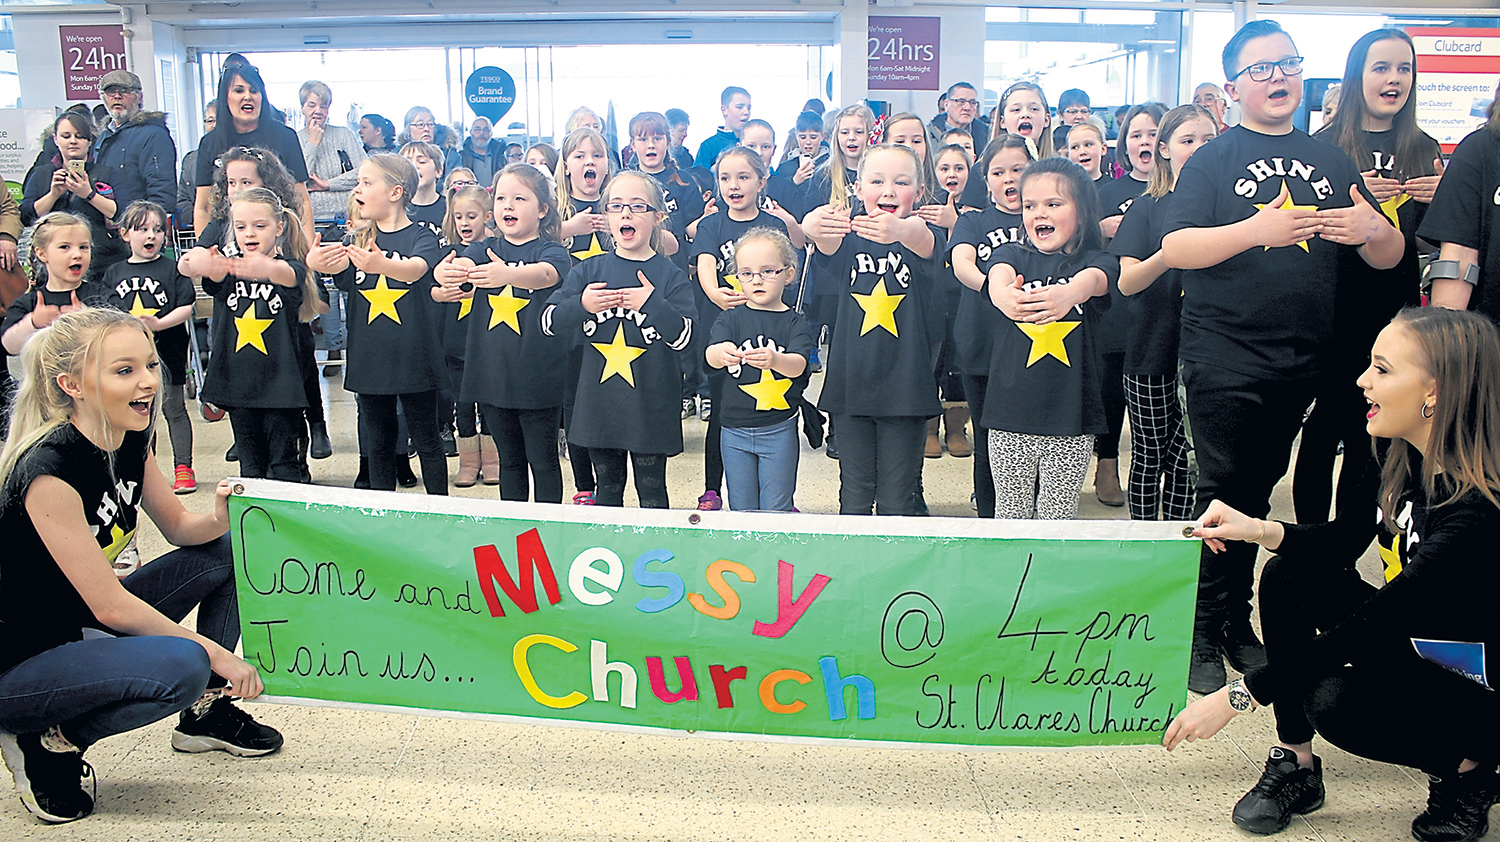 St Clare's Flash Mob in Tesco & Messy Church